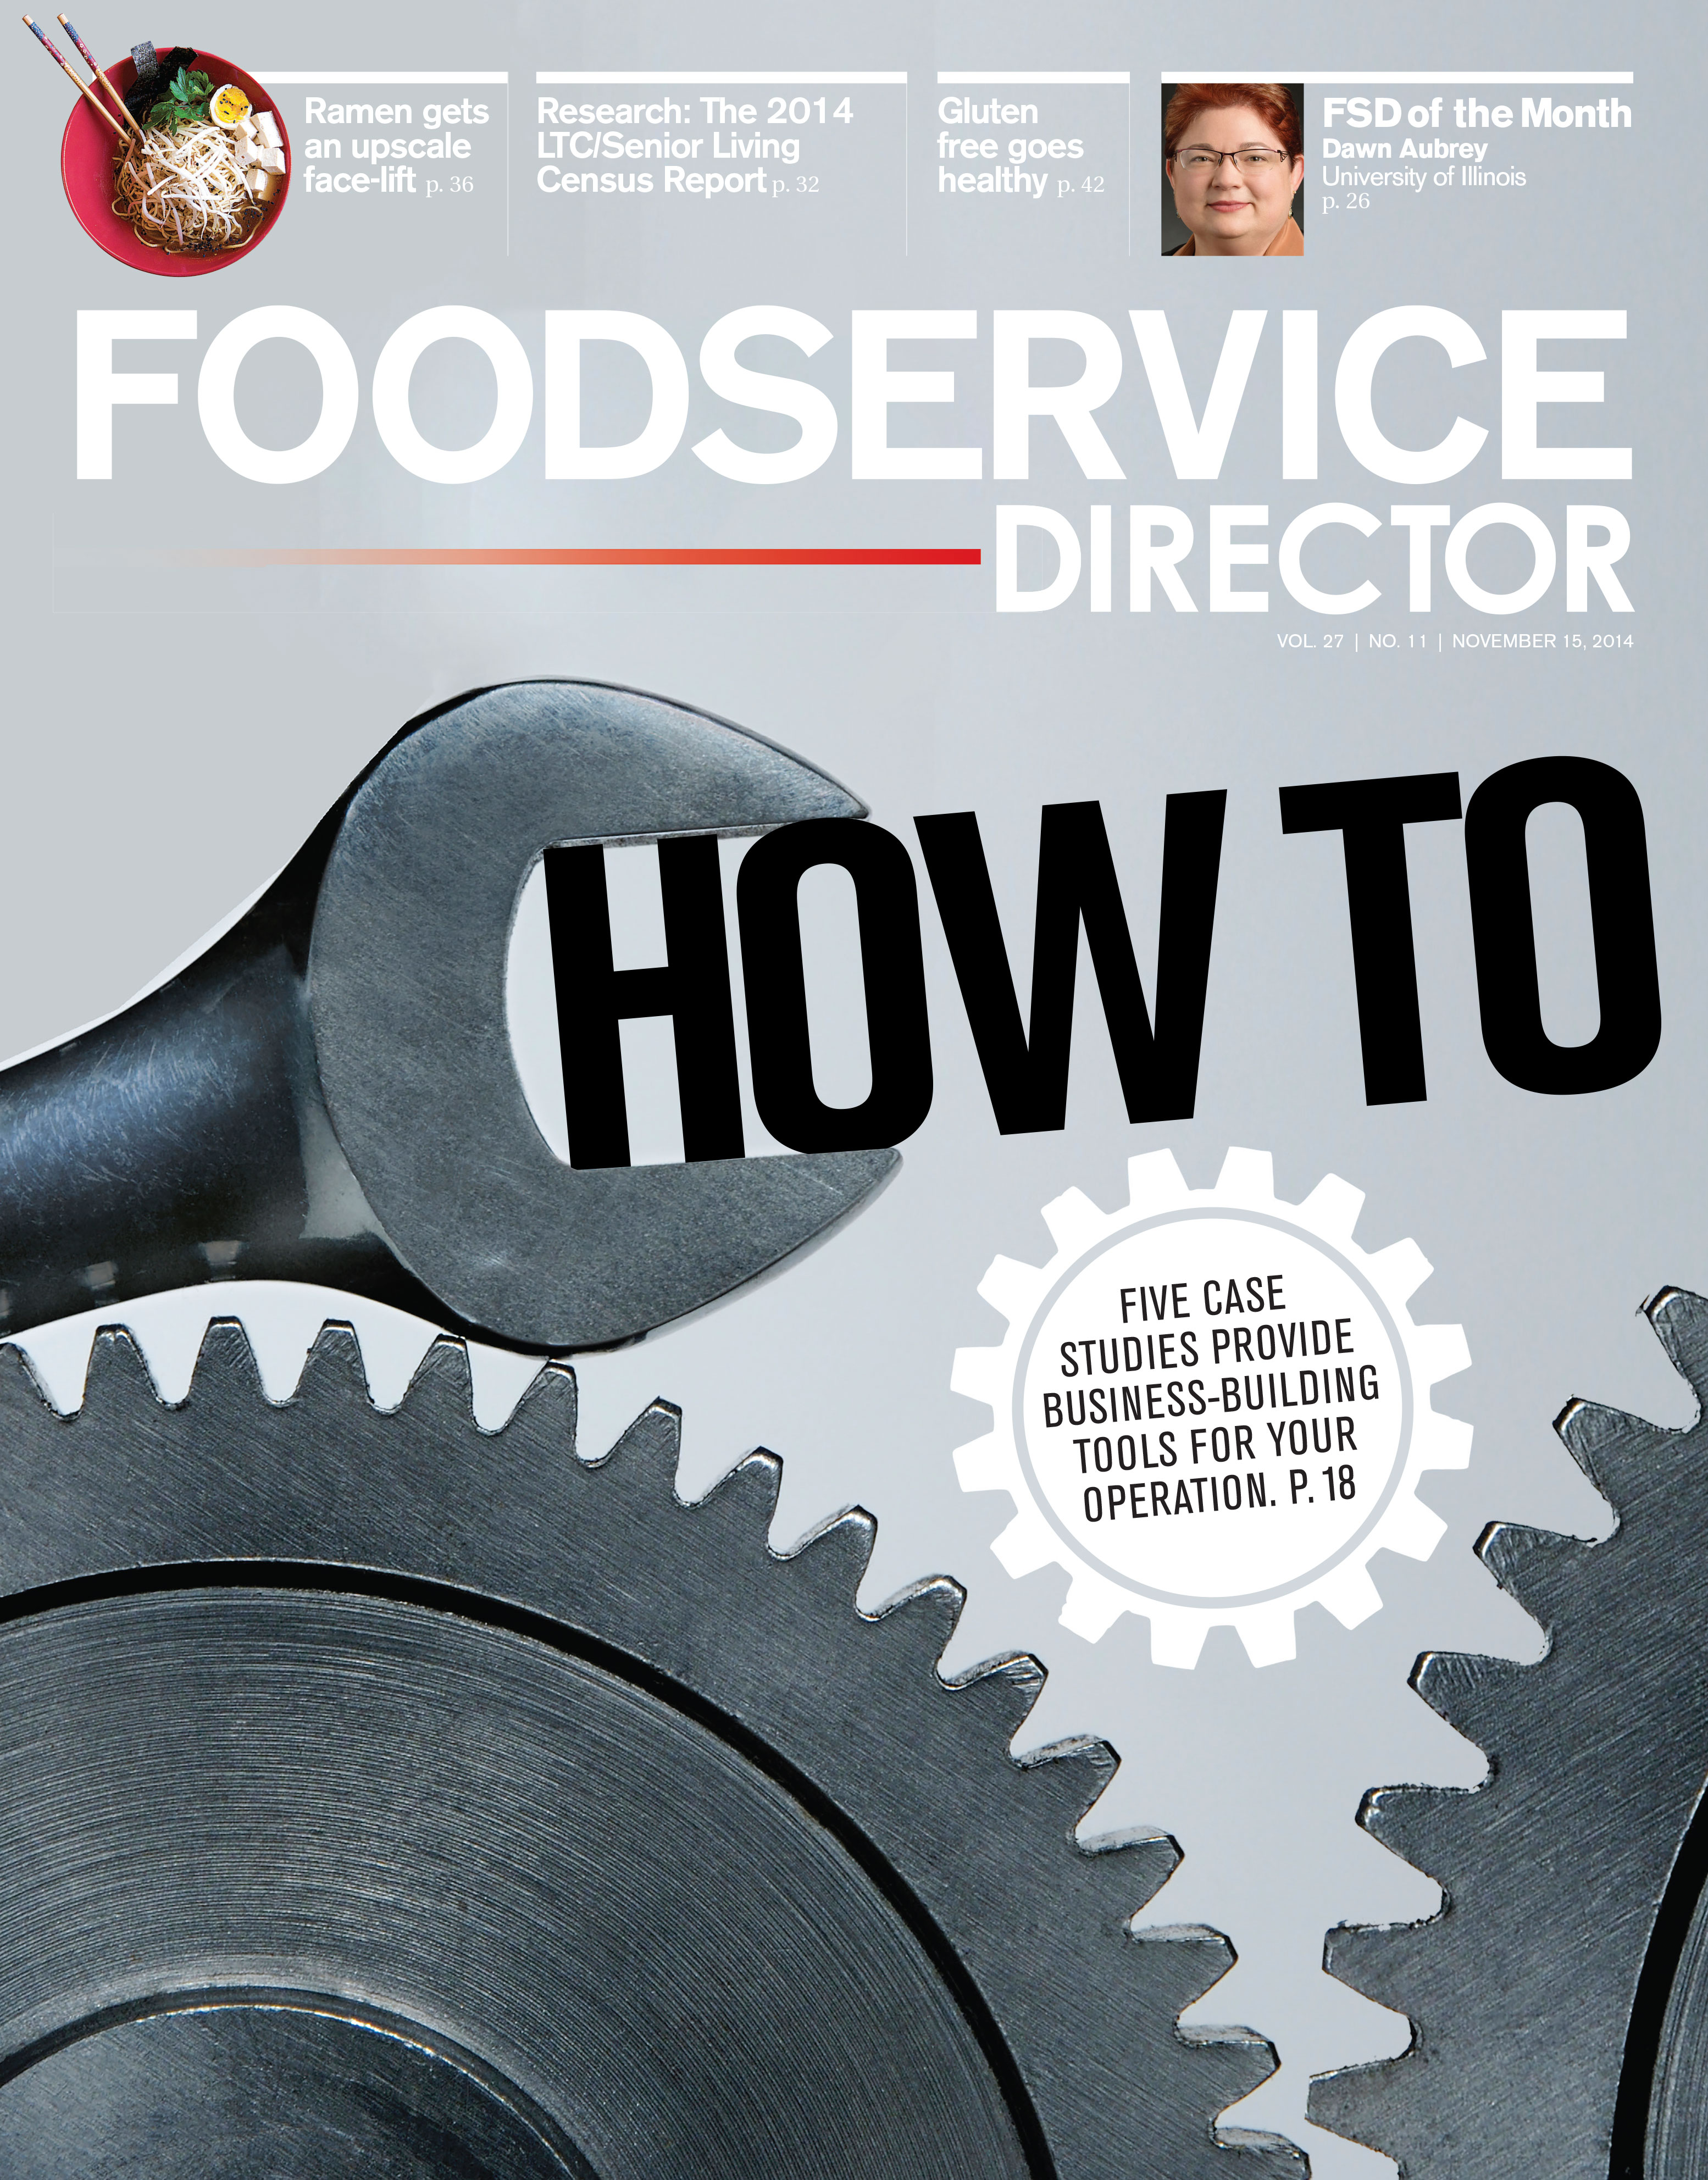 FoodService Director Magazine FoodService Director | November 2014 Issue